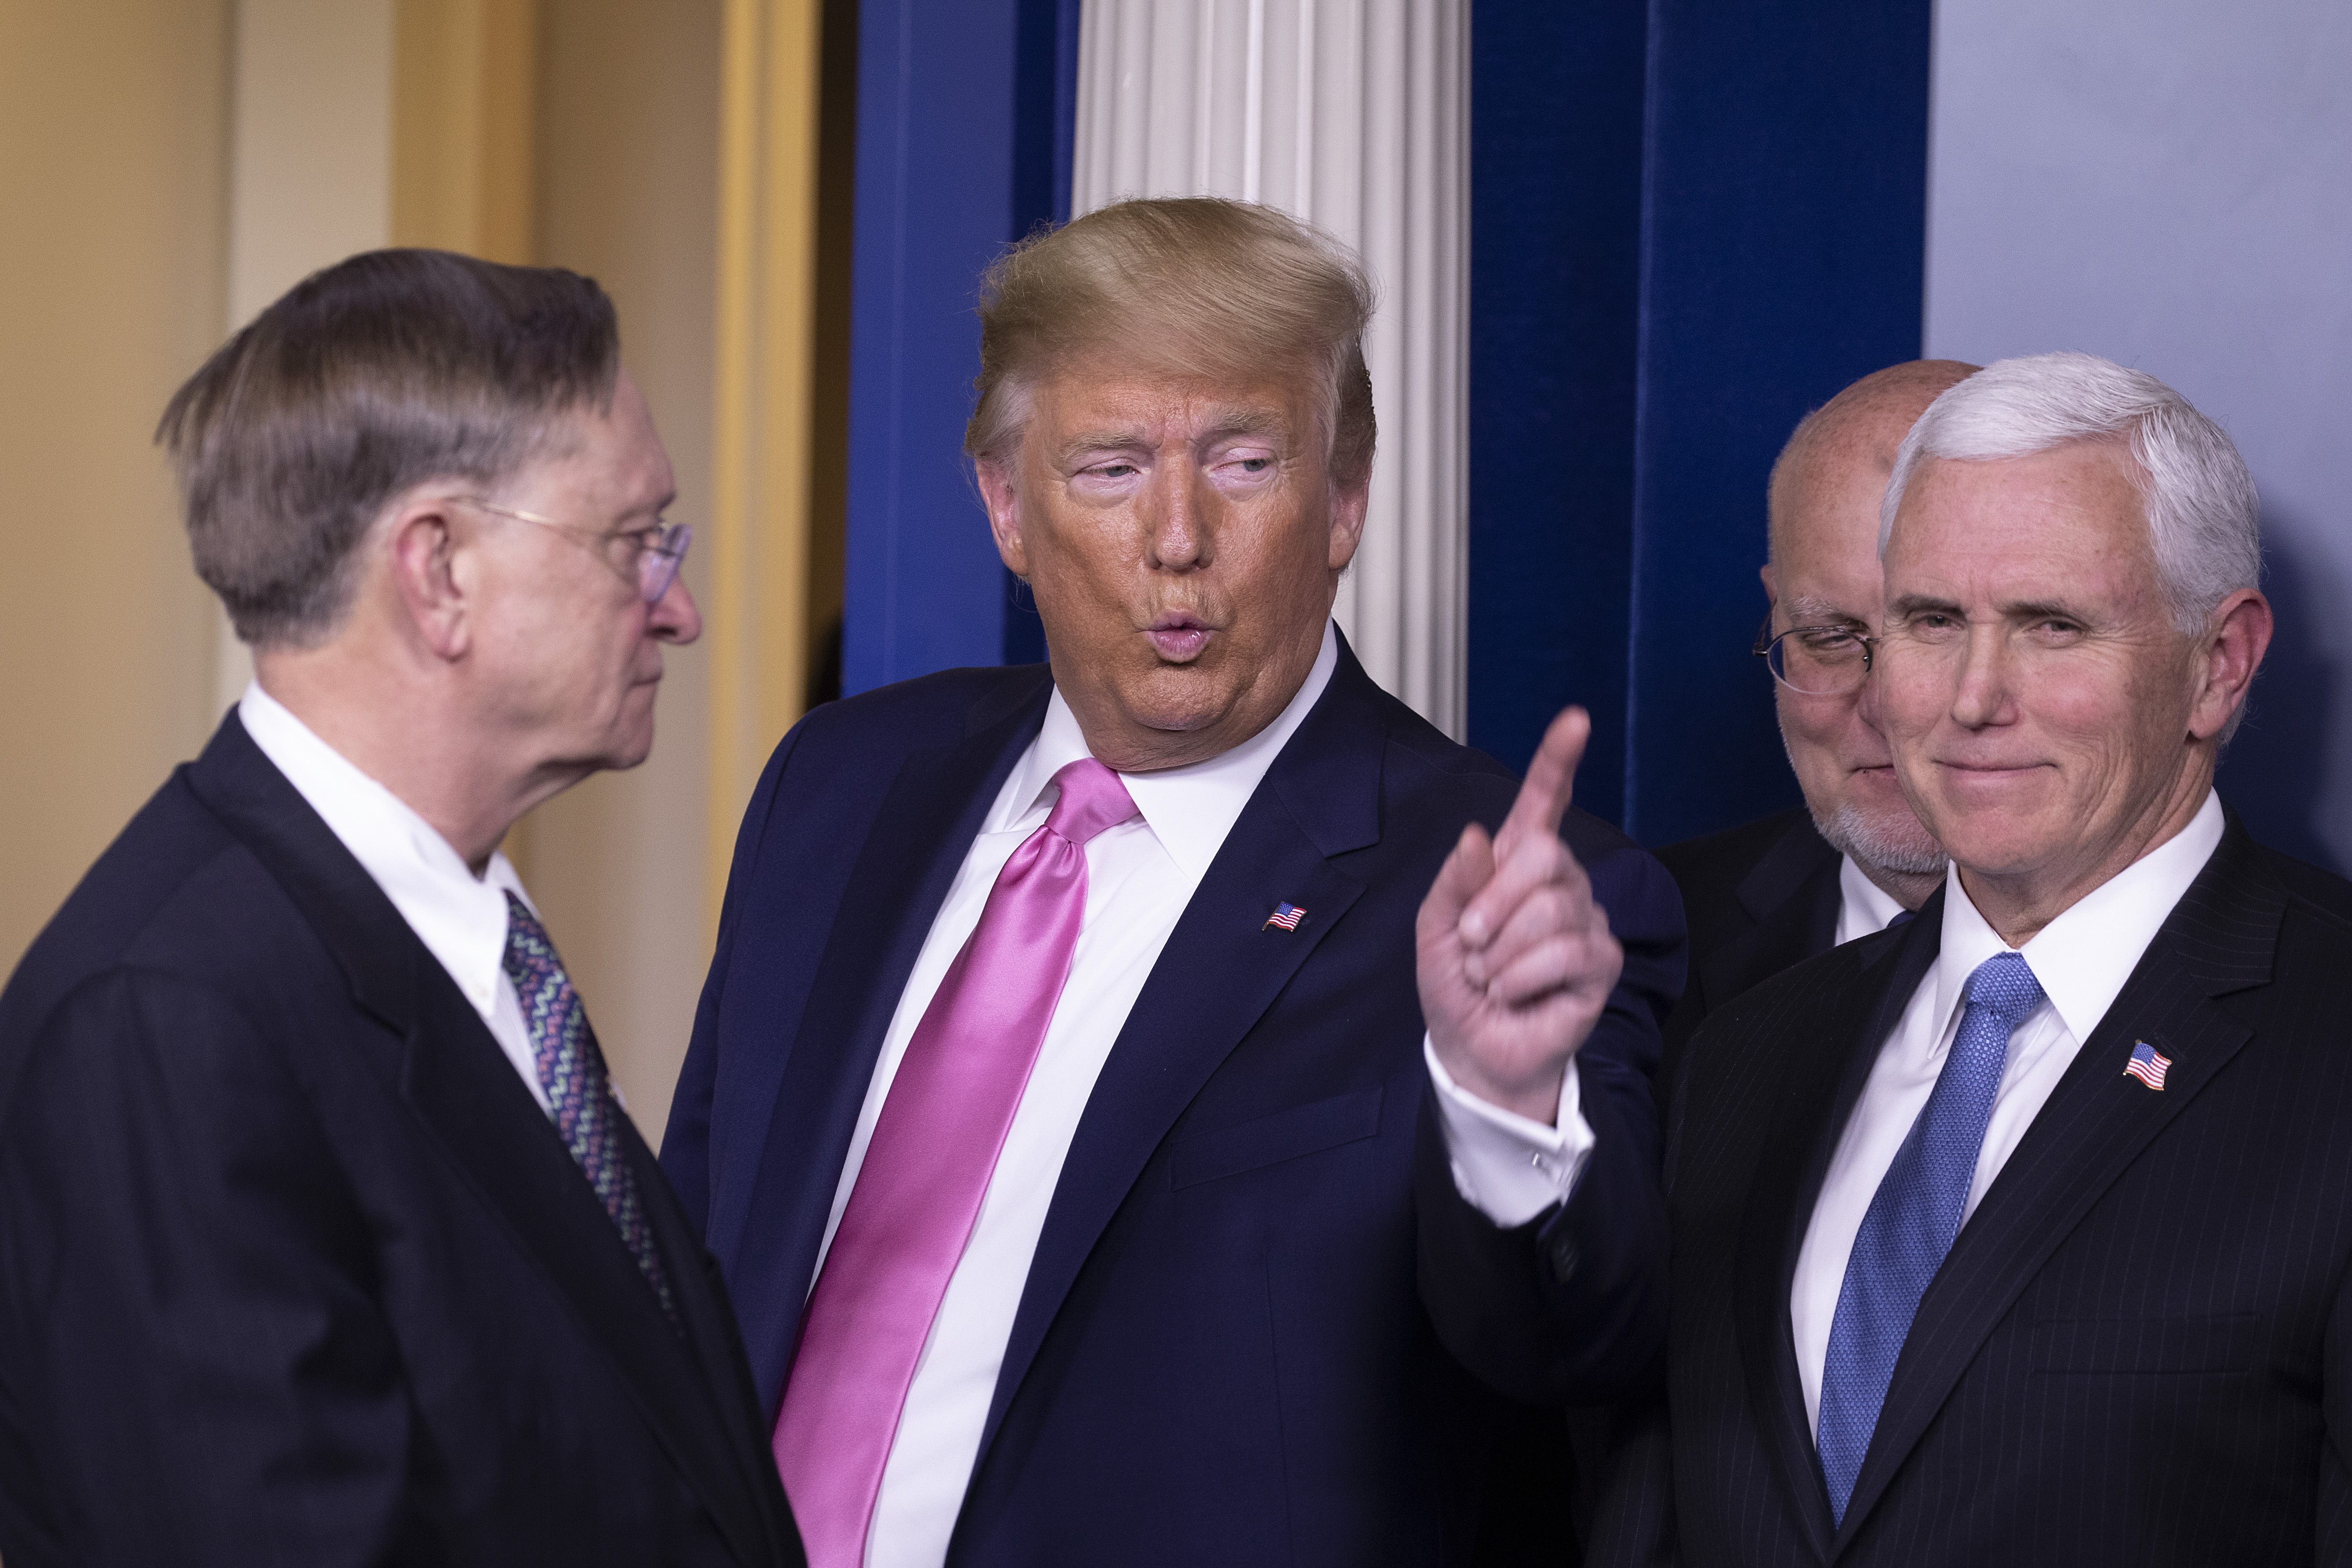 President Trump Holds Press Conference With CDC Officials On Coronavirus